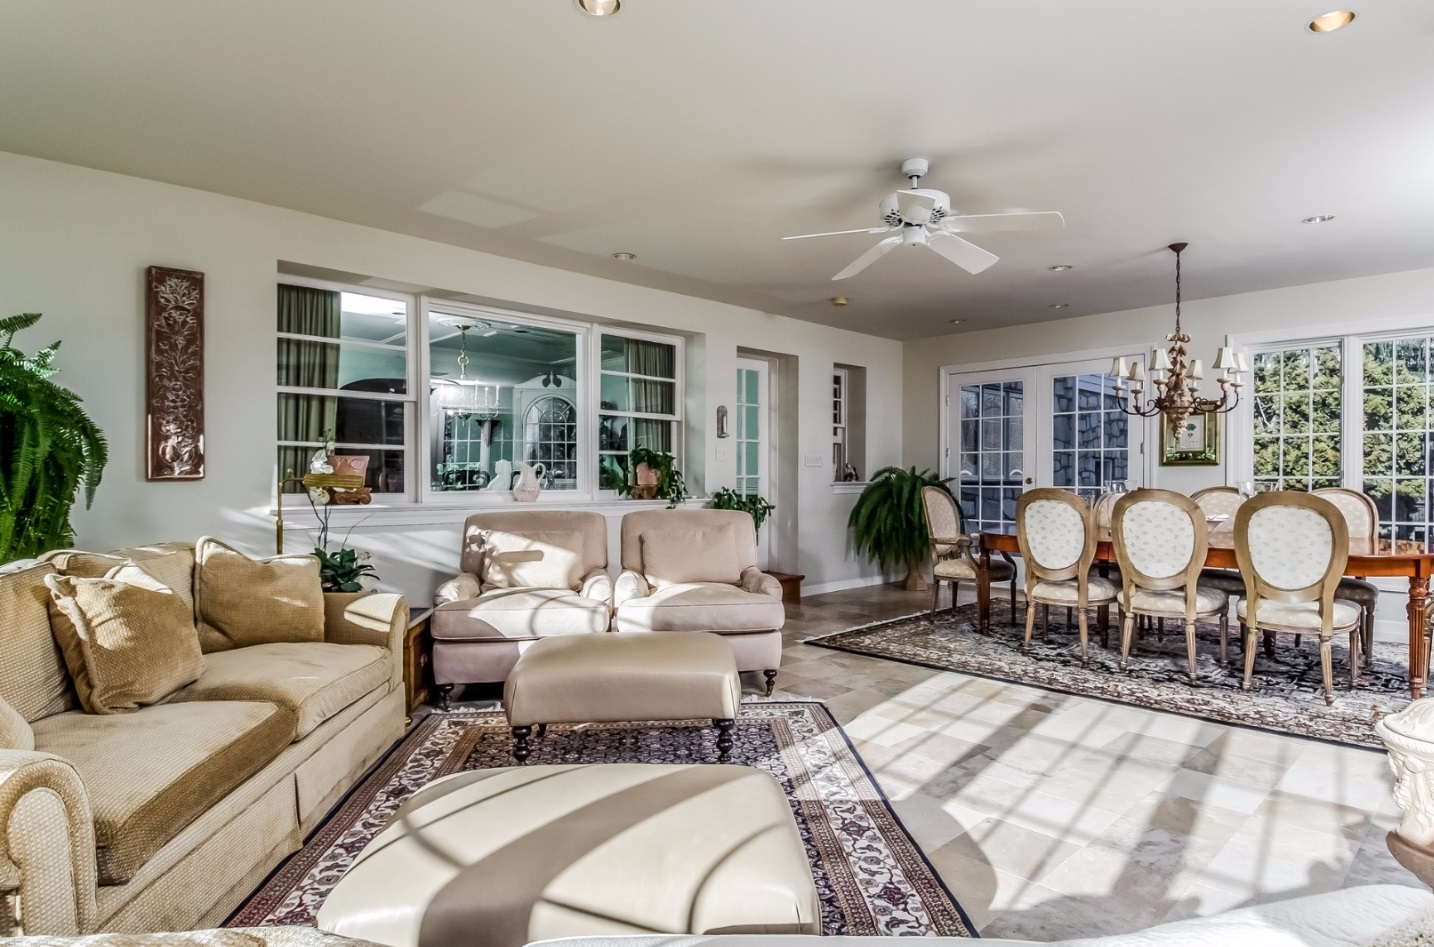 Open Concept Meet Classic Architecture Steve Walny REALTOR®